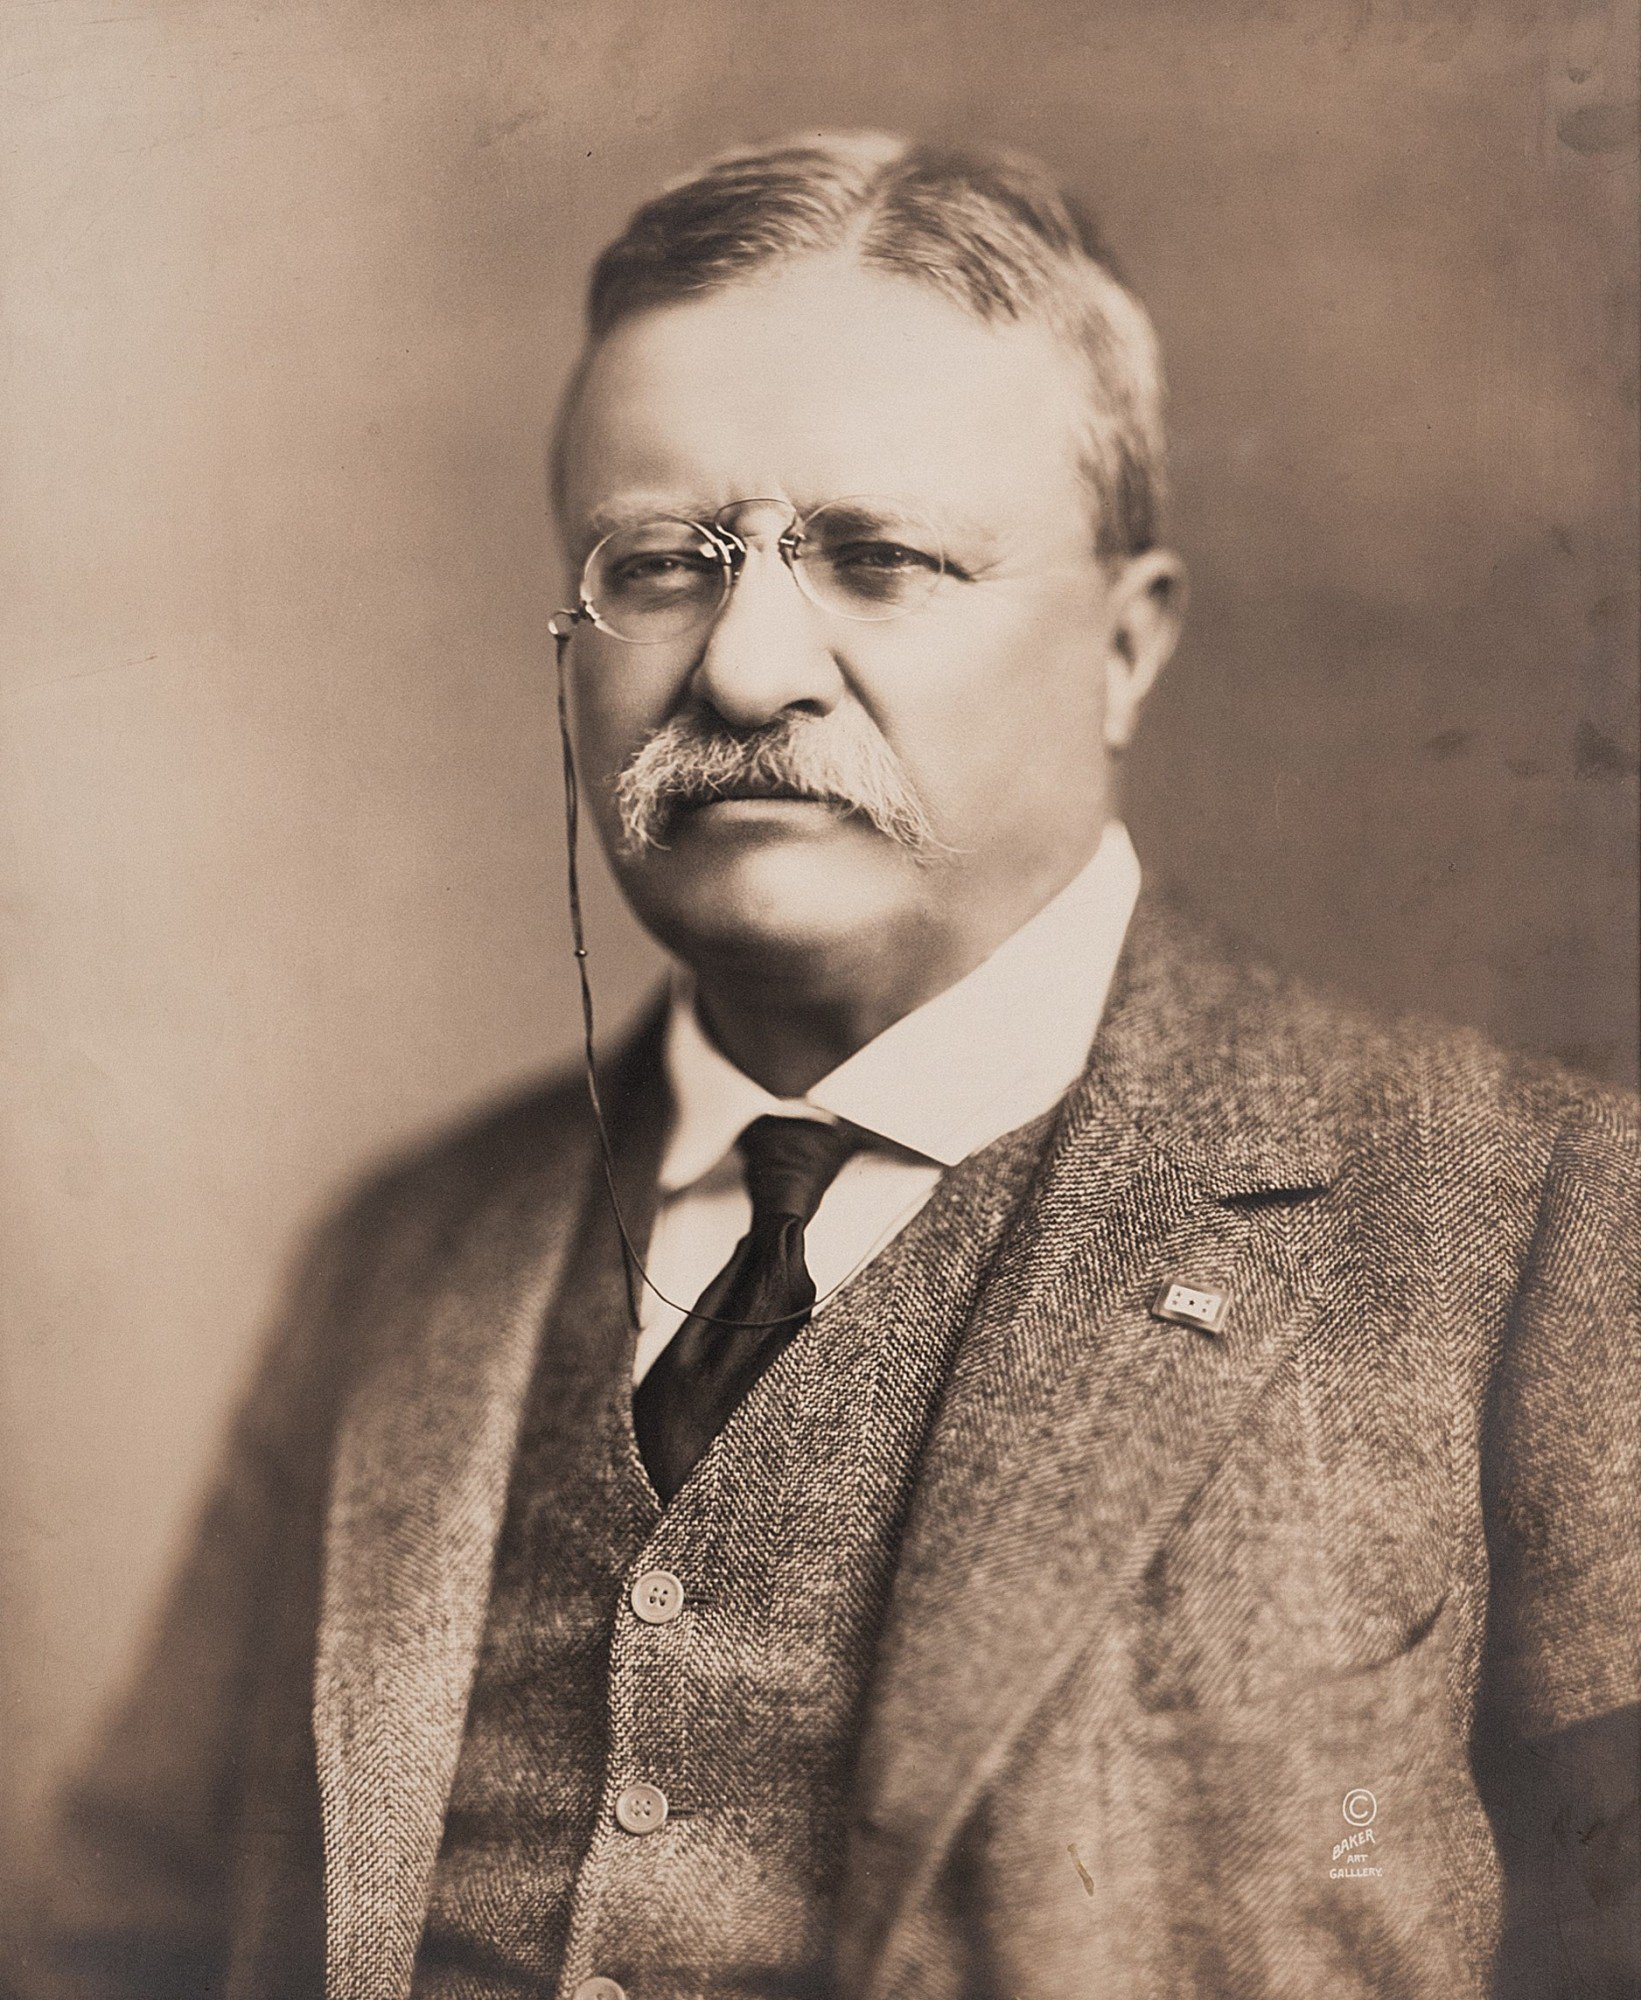 Picture of President Theodore Roosevelt in 1918 in a suit and tie and a monocle.